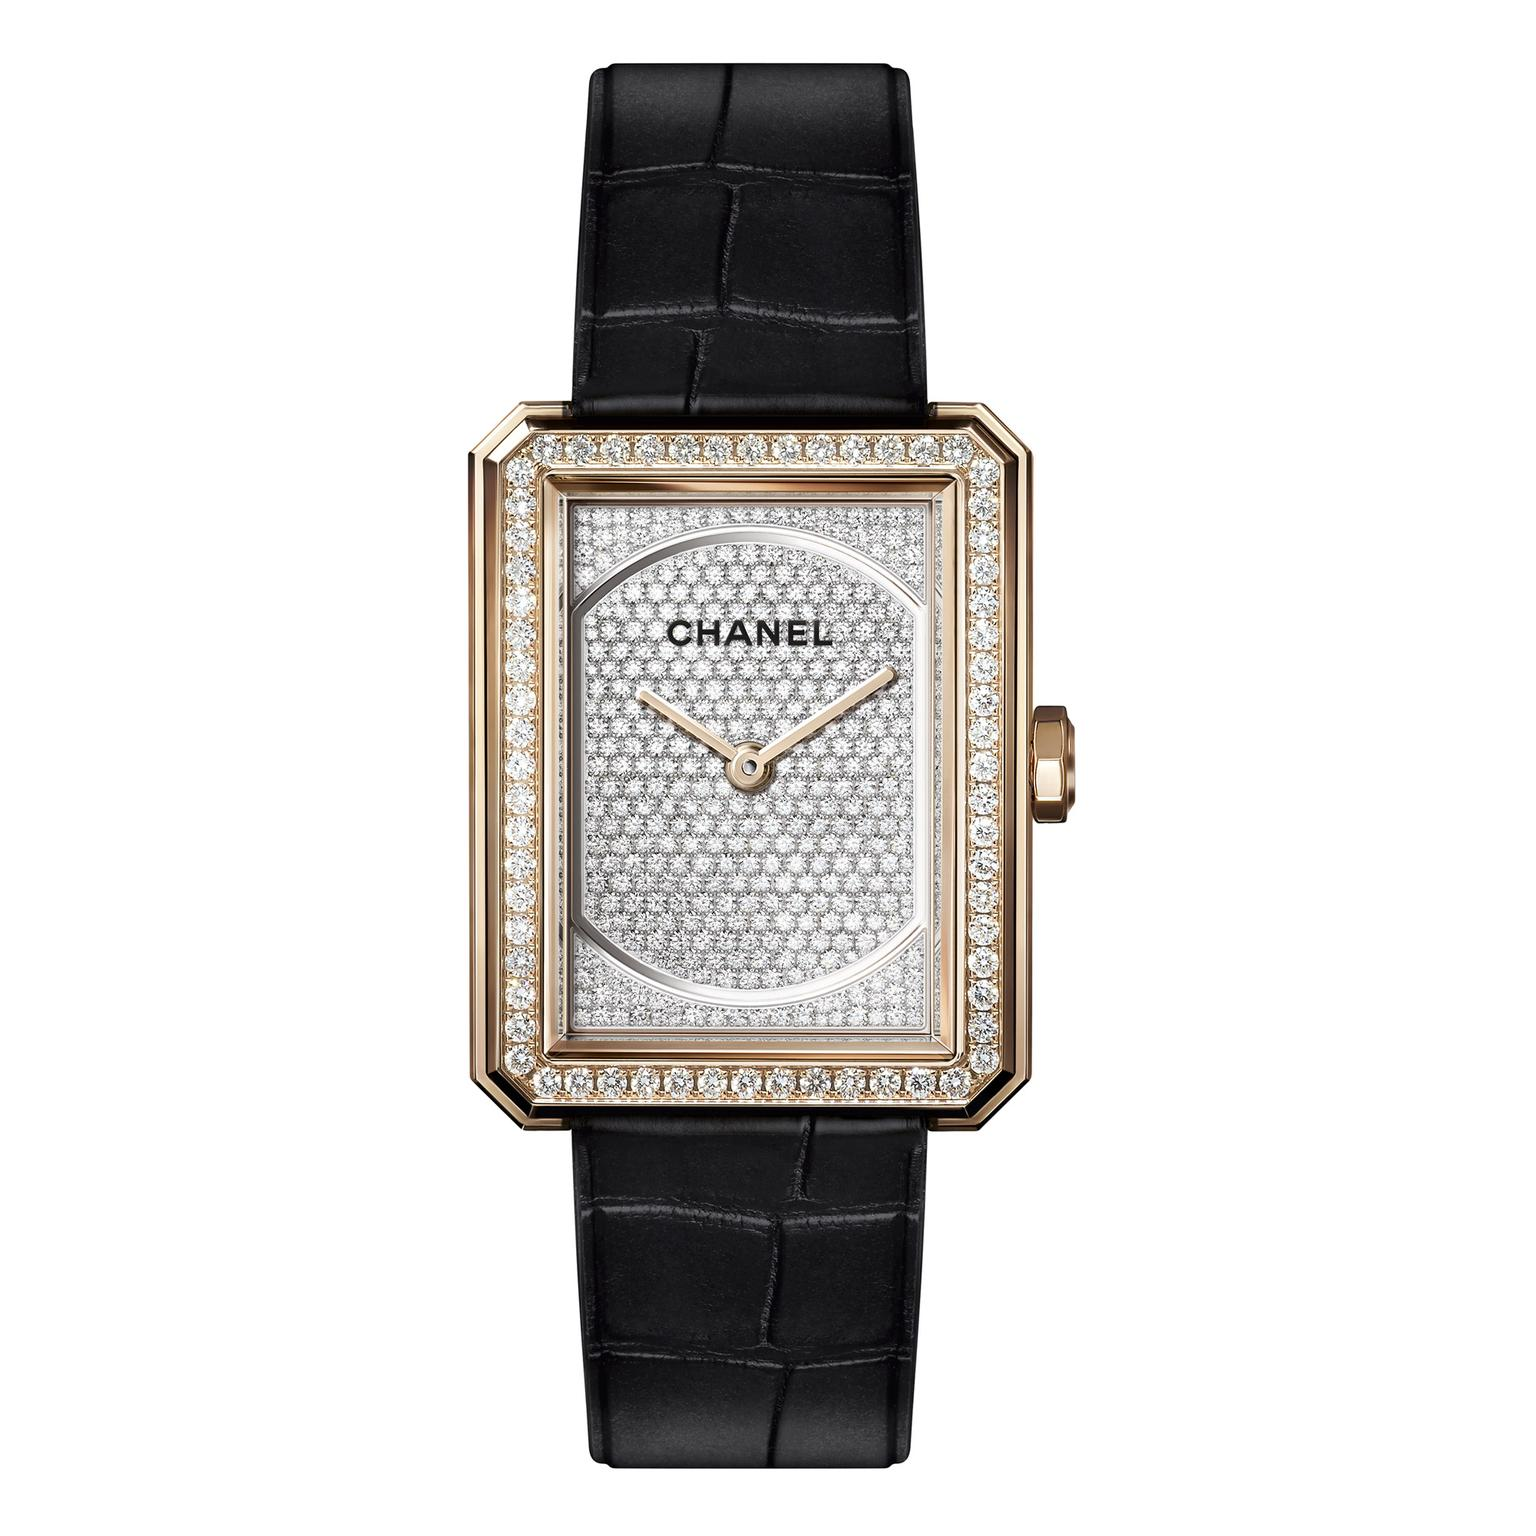 Chanel Boy.Friend watch with paved dial in beige gold